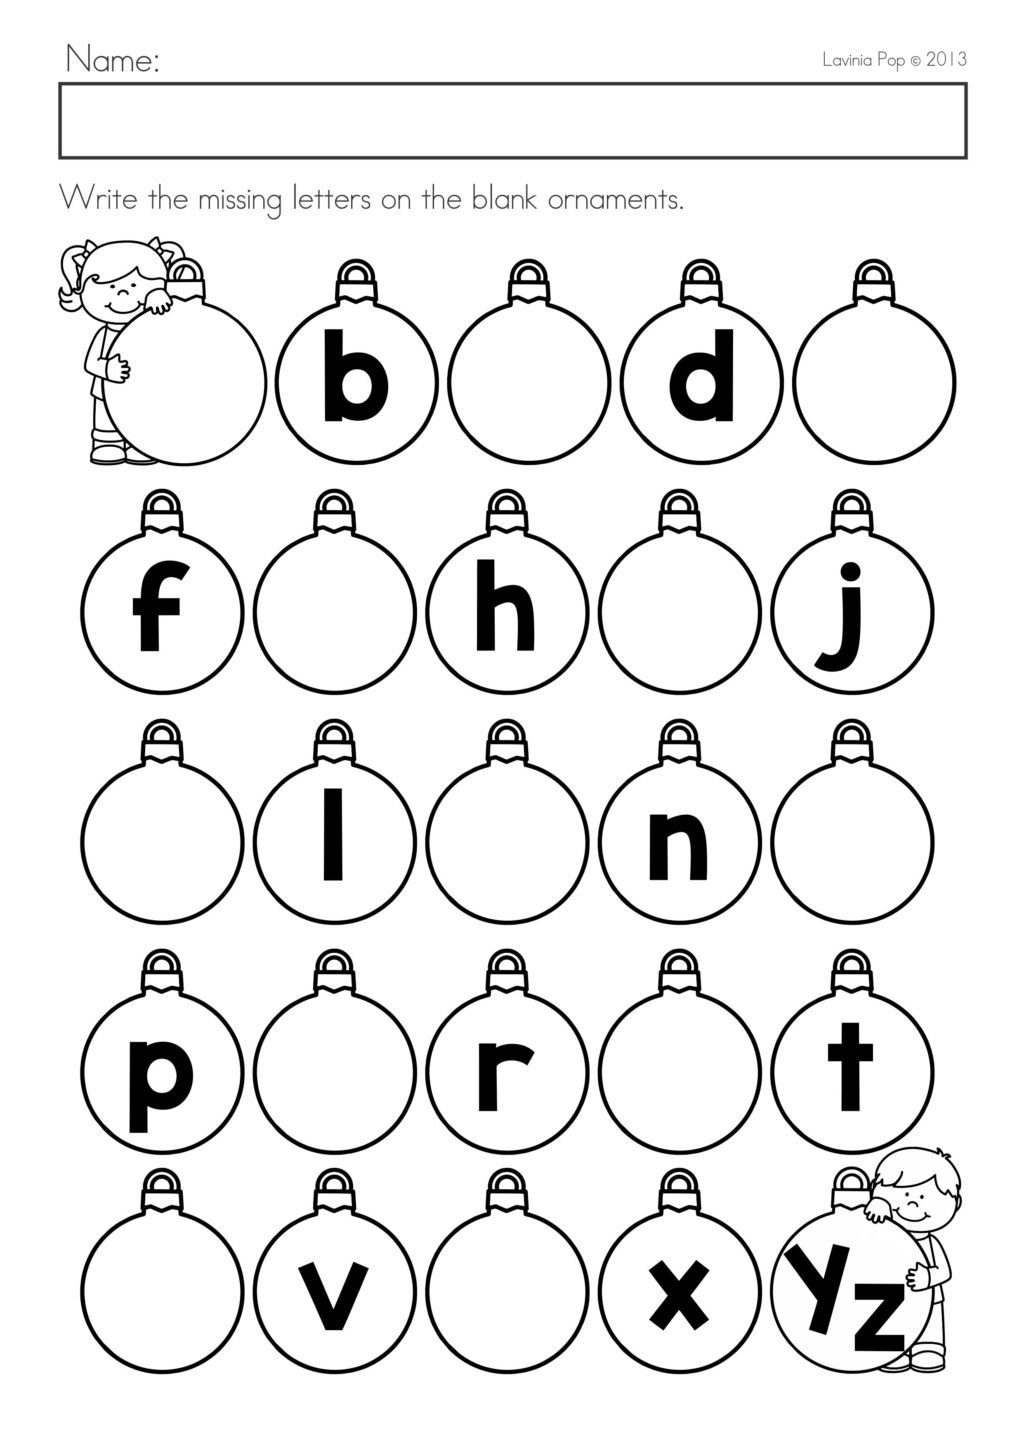 Spanish Alphabet Worksheets for Kindergarten Worksheet Alphabet Sheets forrgarten Worksheet Free